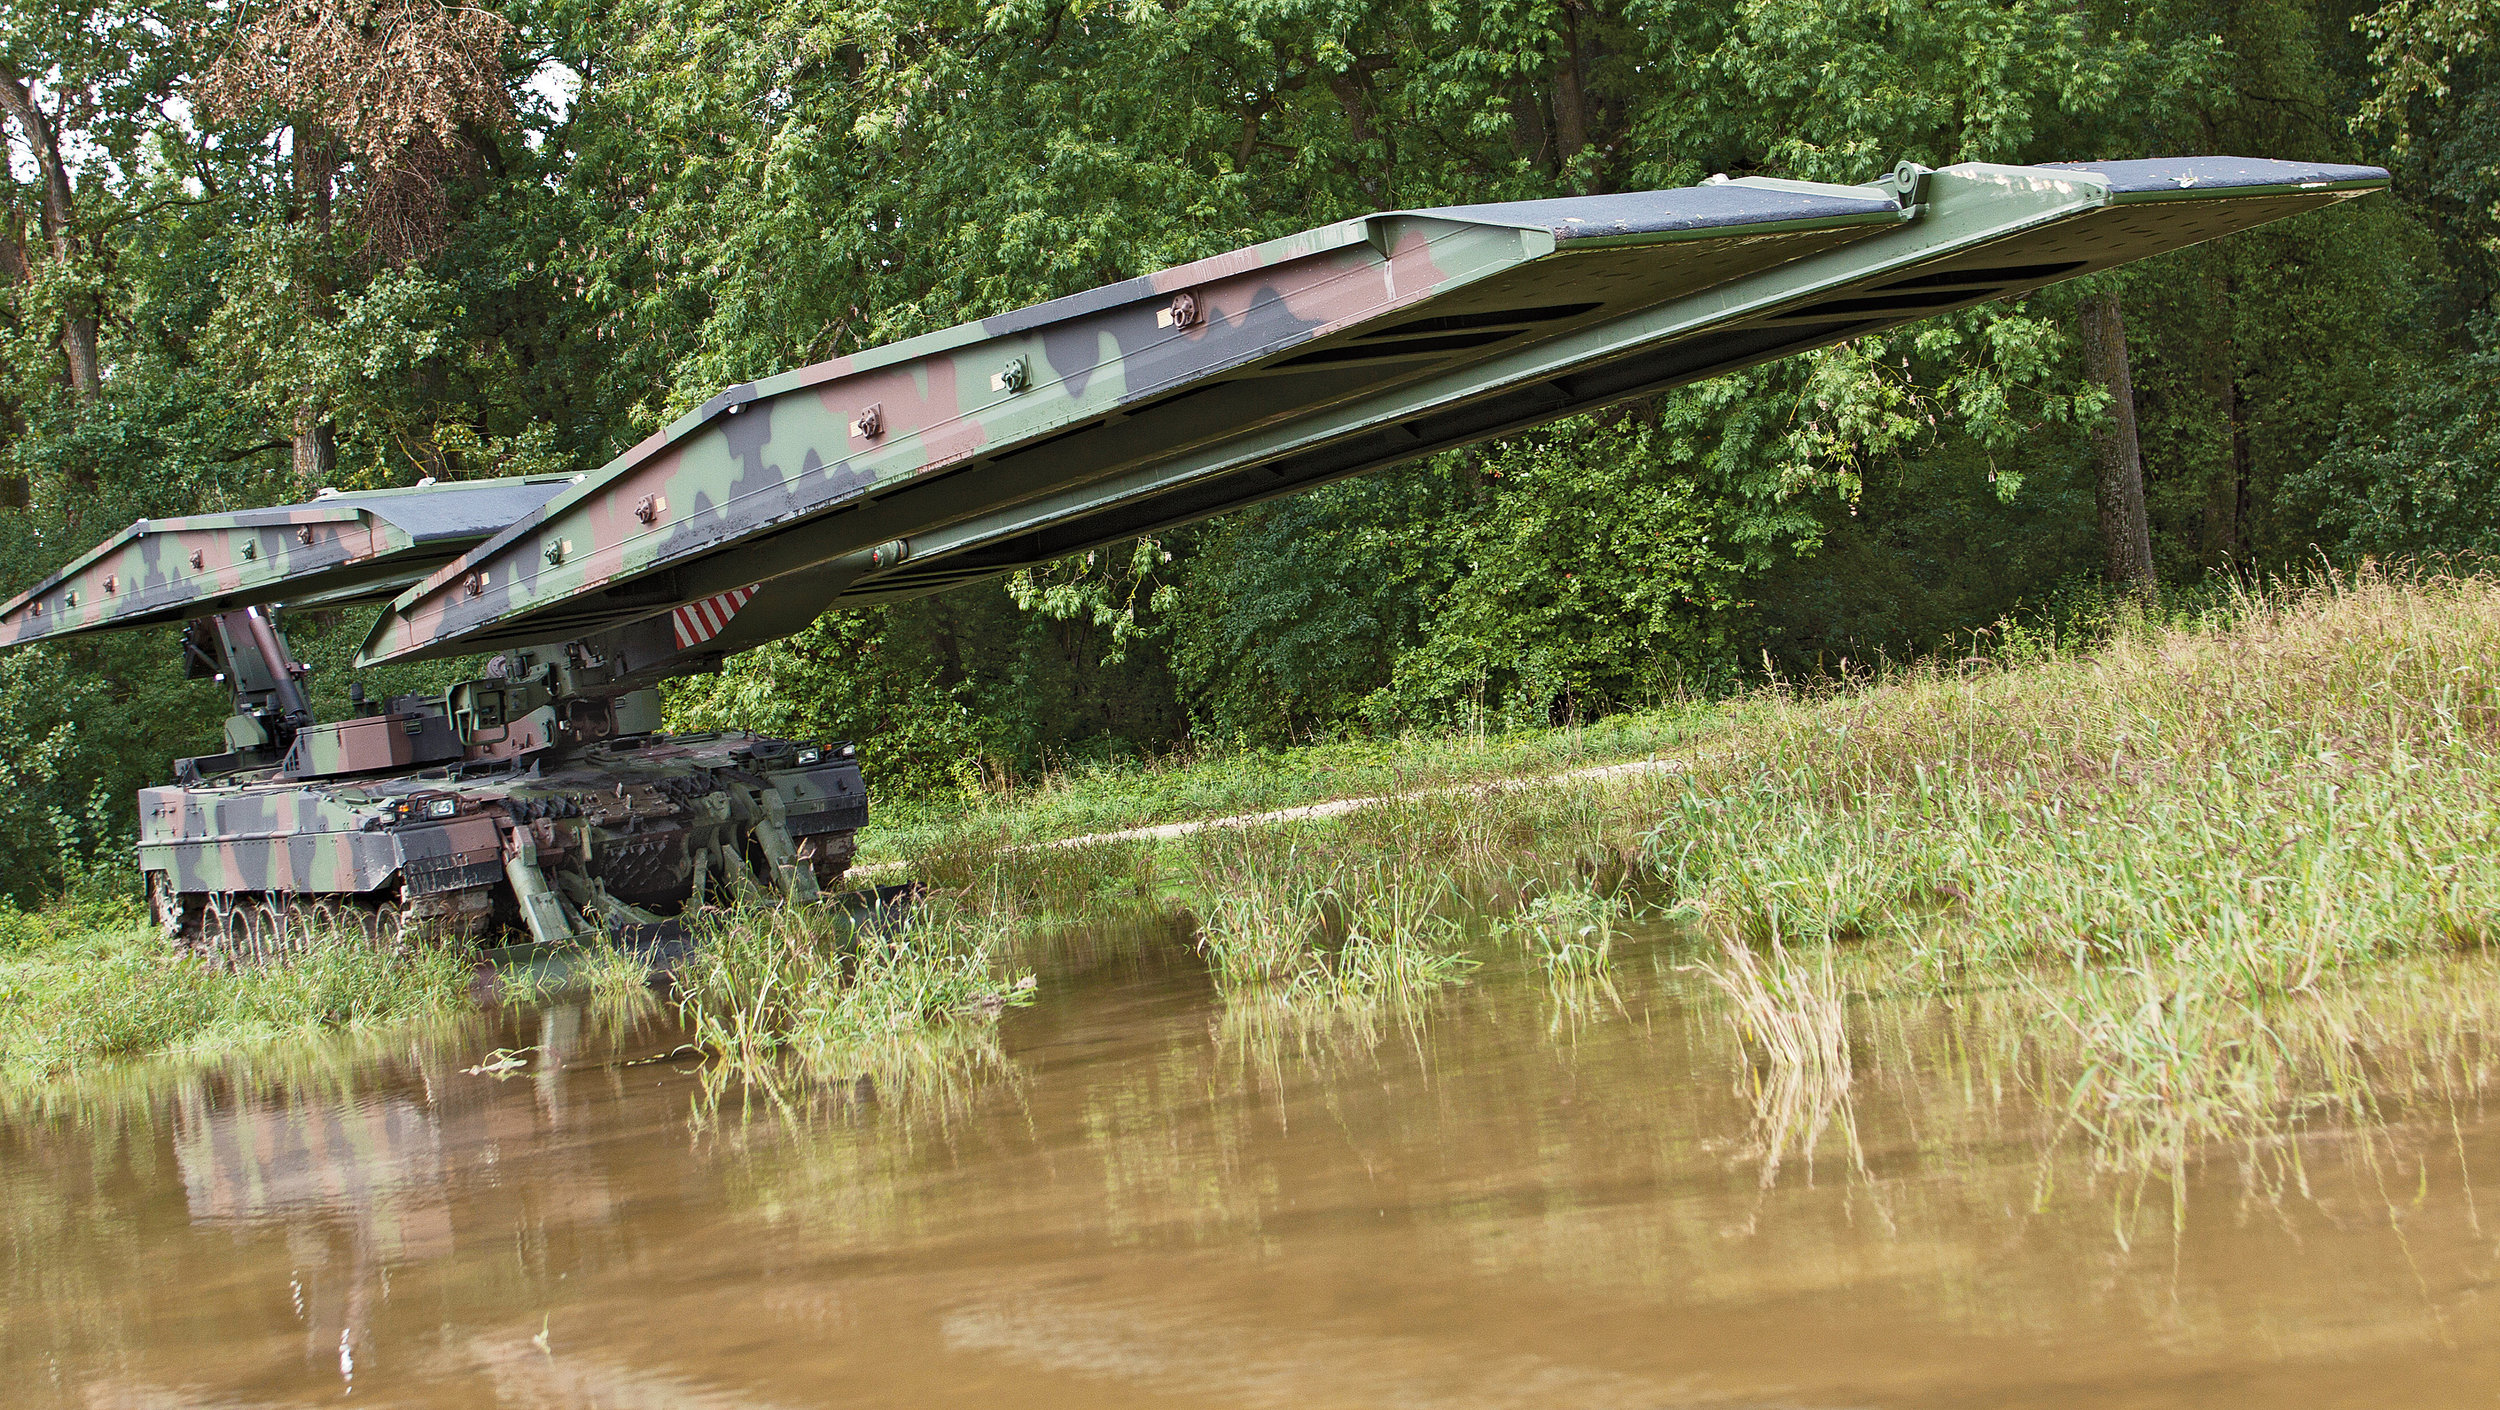 The Leguan's launching system consists of the laying mechanism, a support blade, hydraulics and the control system. It is also a versatile system that can be configured into several different options: it can lay a 14 or 26 metre-long bridge in a matter of minutes, in all weather, day or night.